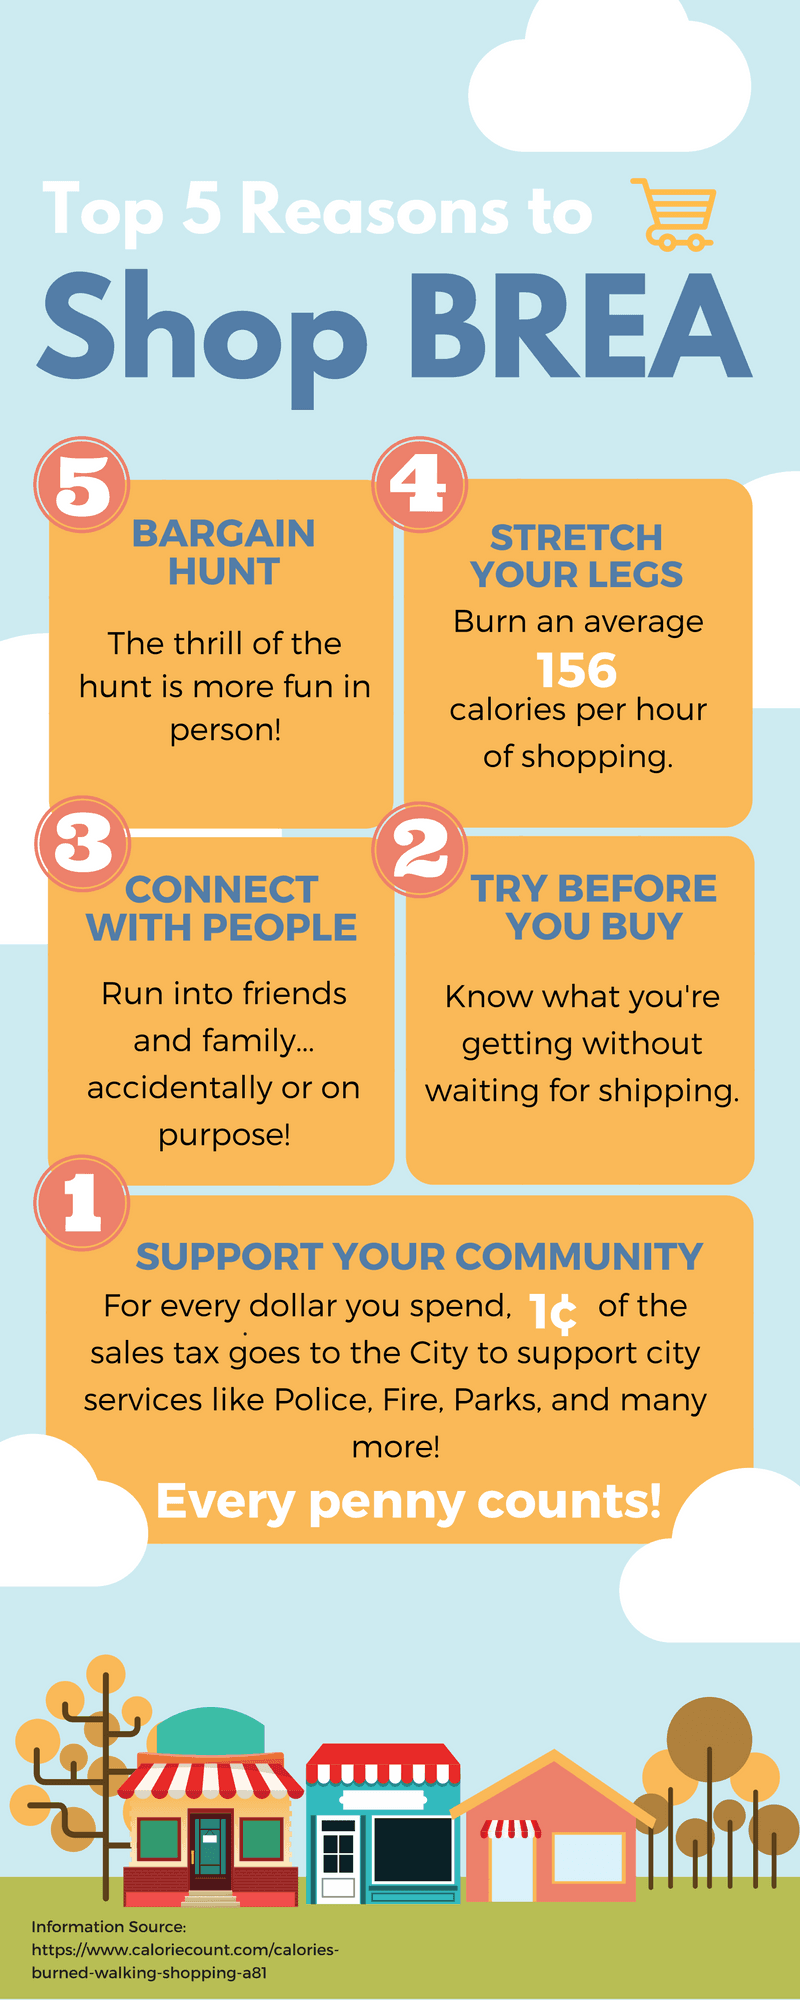 Shop BREA Infographic